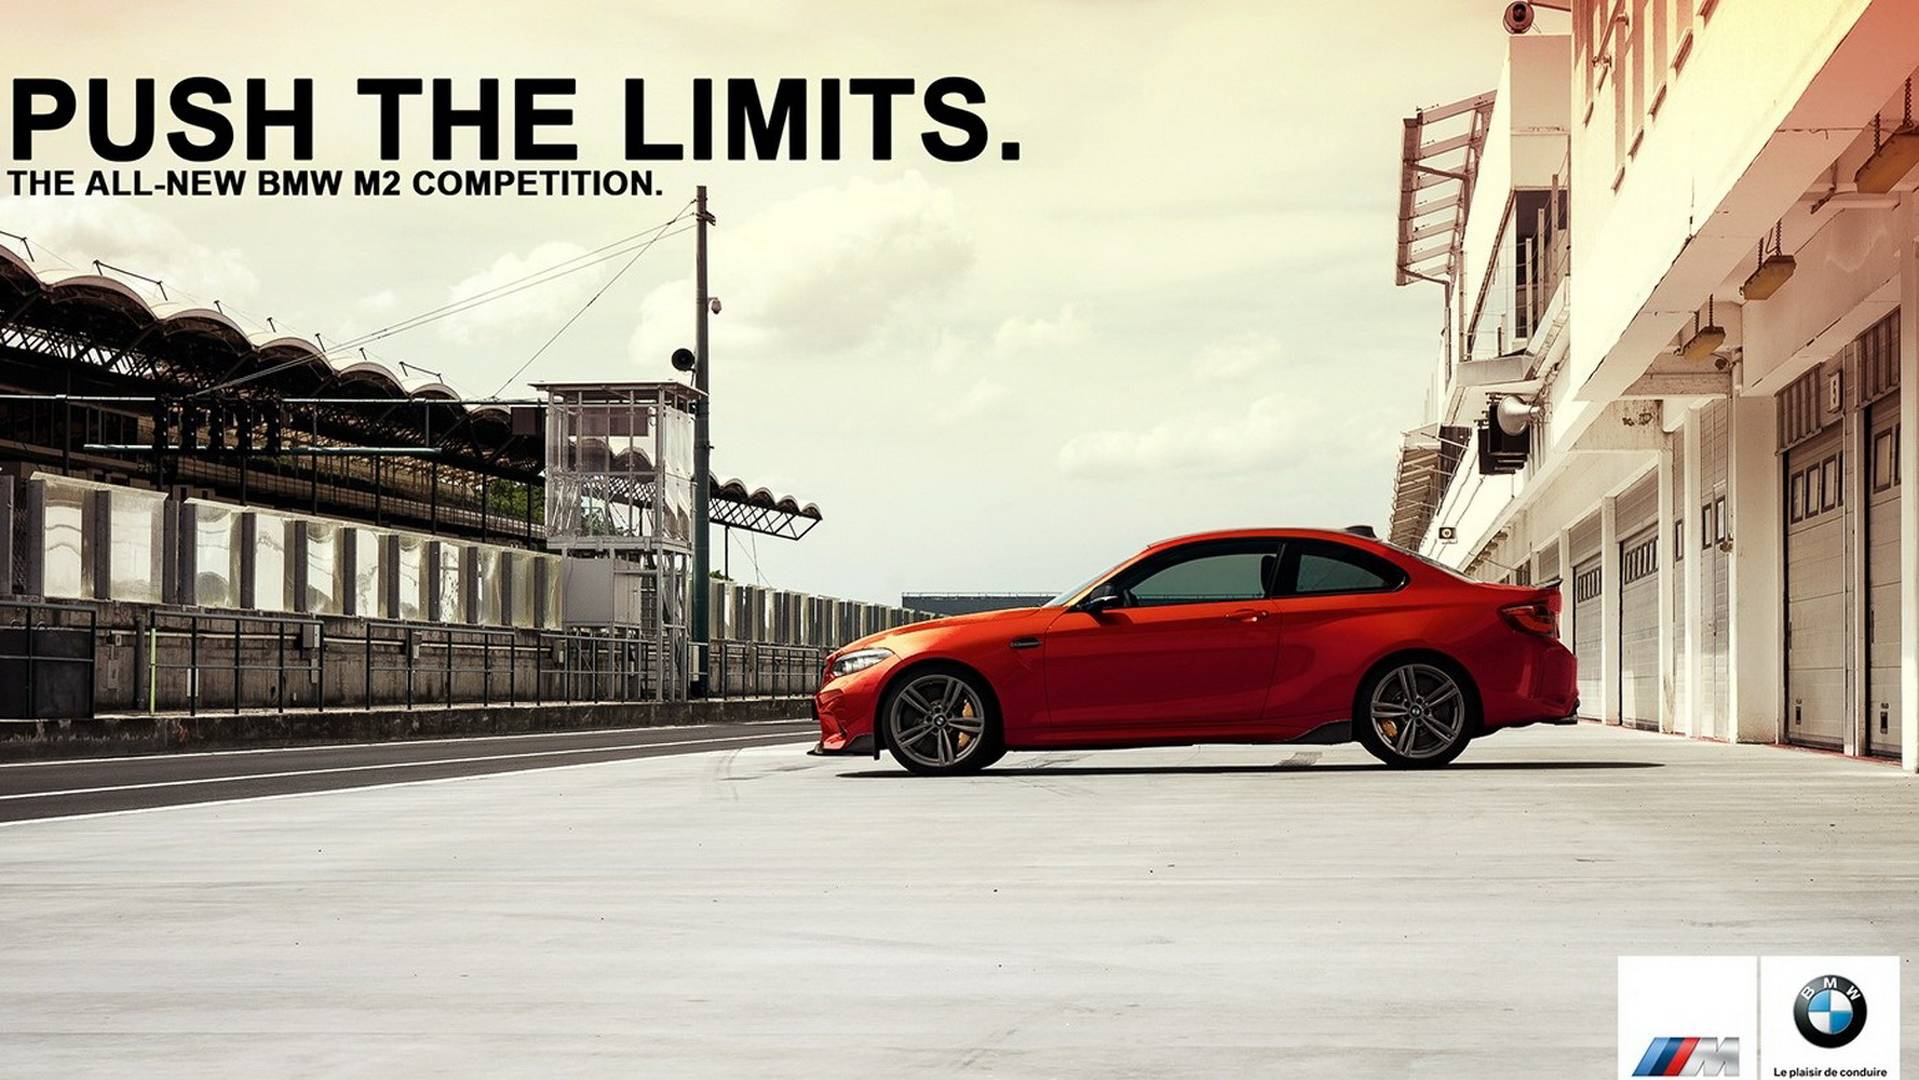 BMW M2 petition May Seem Like The Real Deal But It s Not